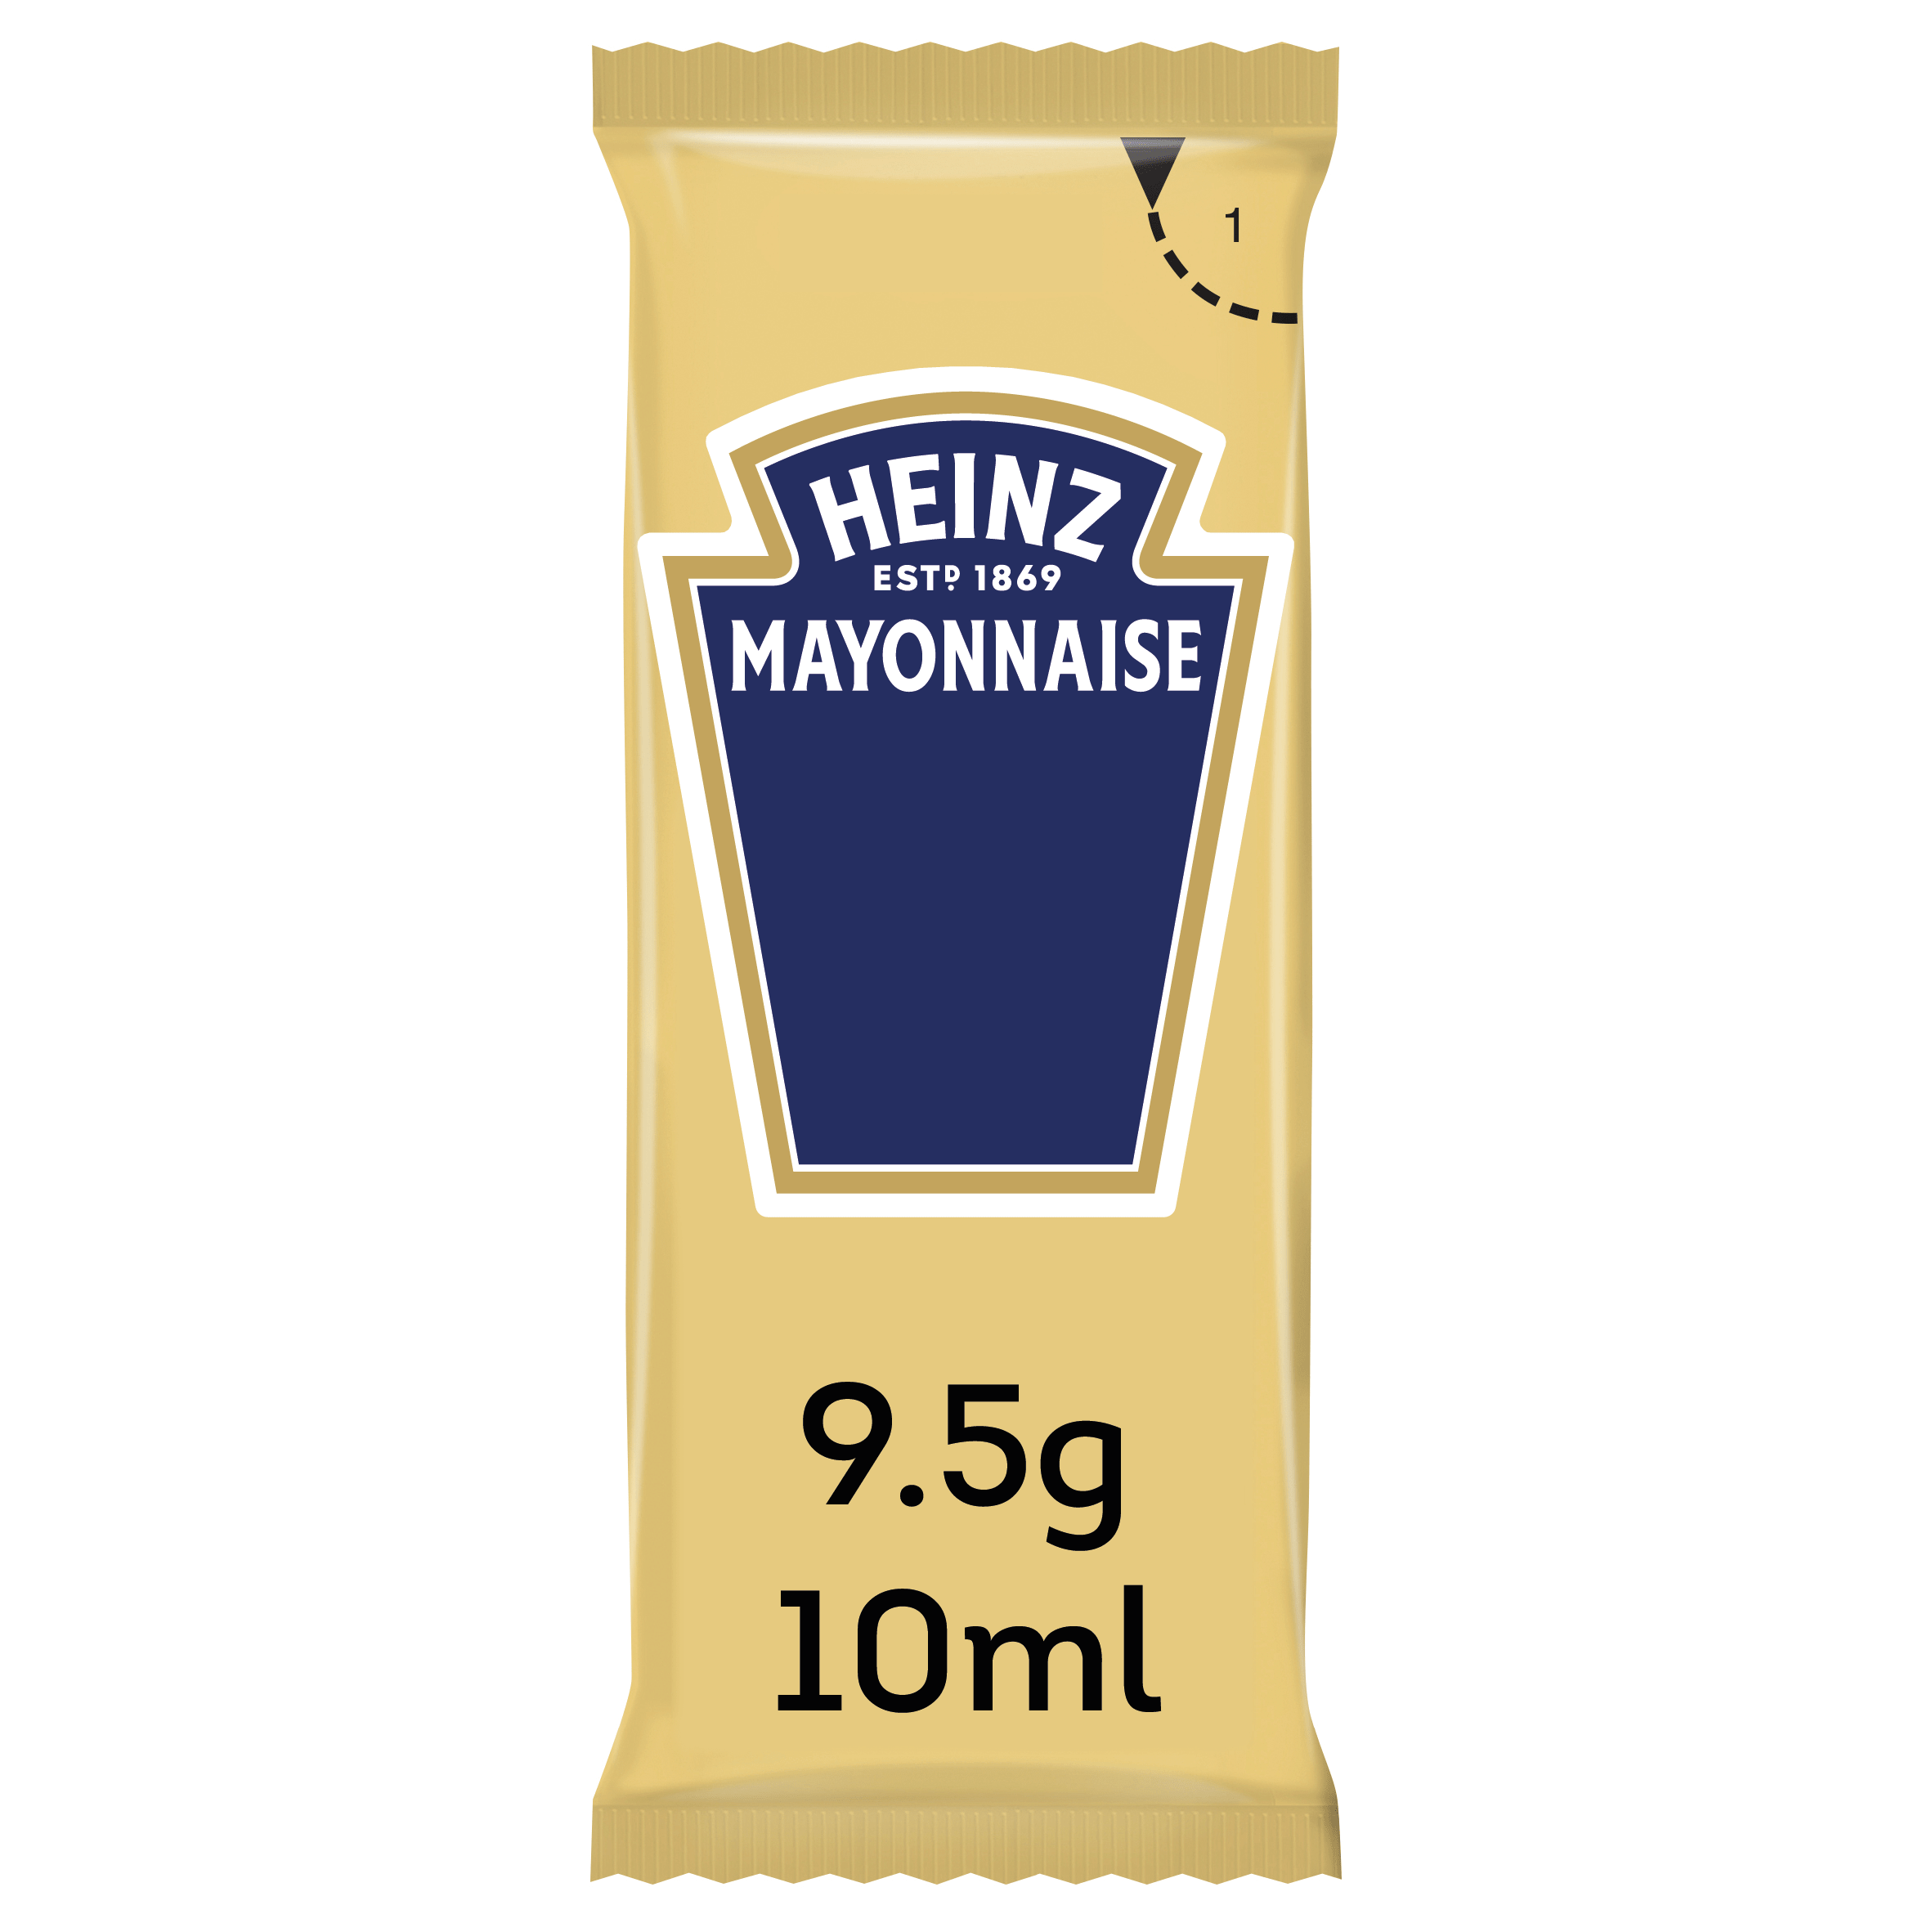 Heinz Mayonnaise 10ml Sachet